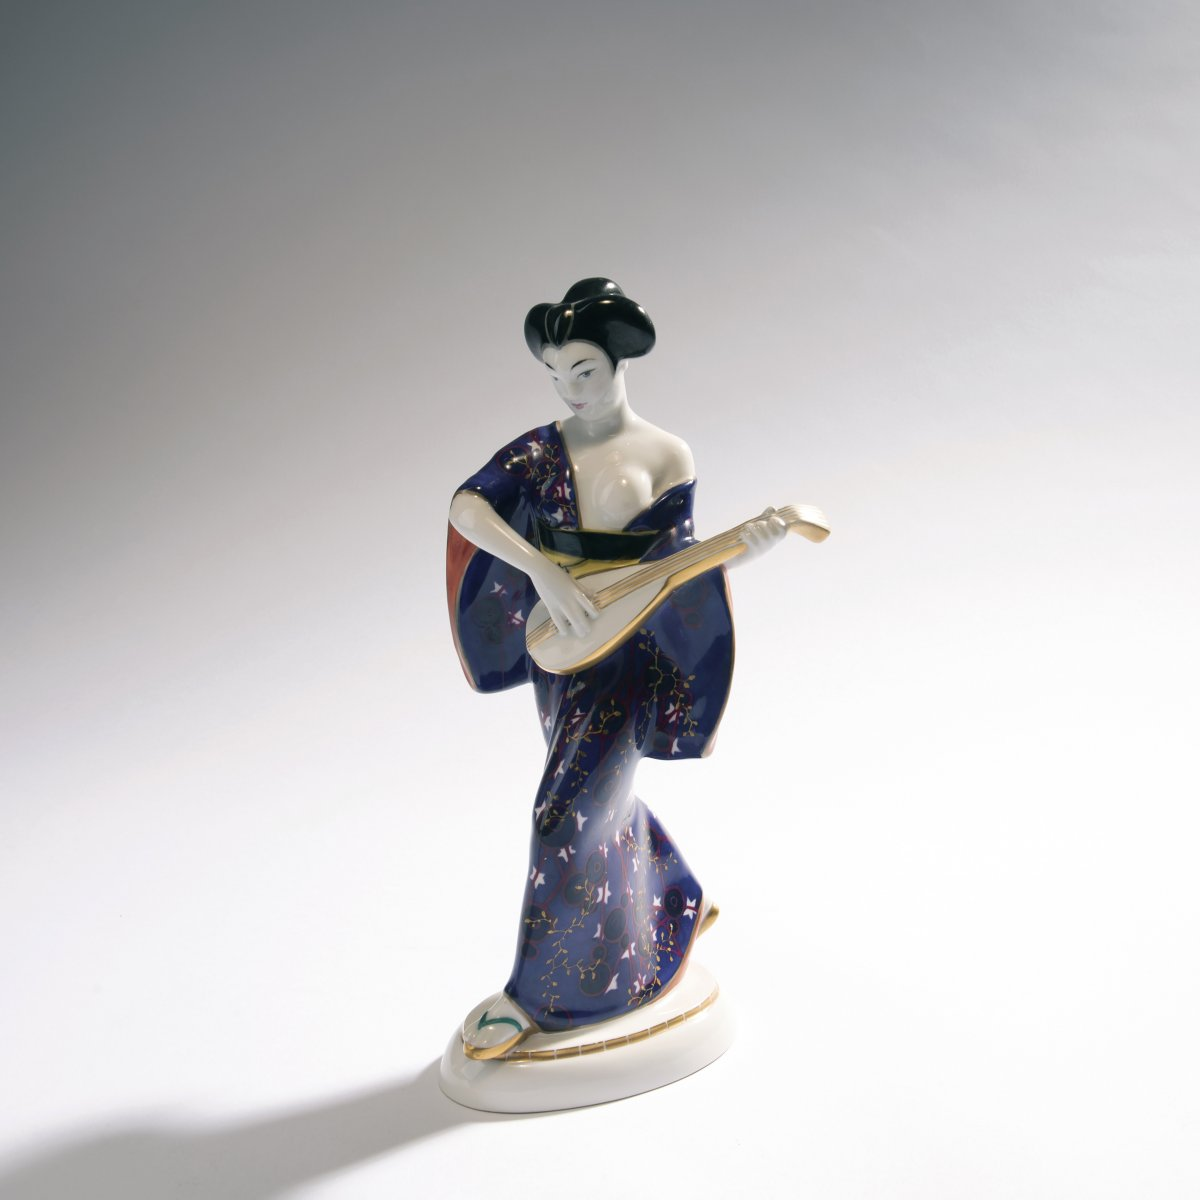 Lot 37 - Adolph Amberg, 'Japanese woman', 1909'Japanese woman', 1909H. 27 cm. Made by StPM Berlin, 1924.